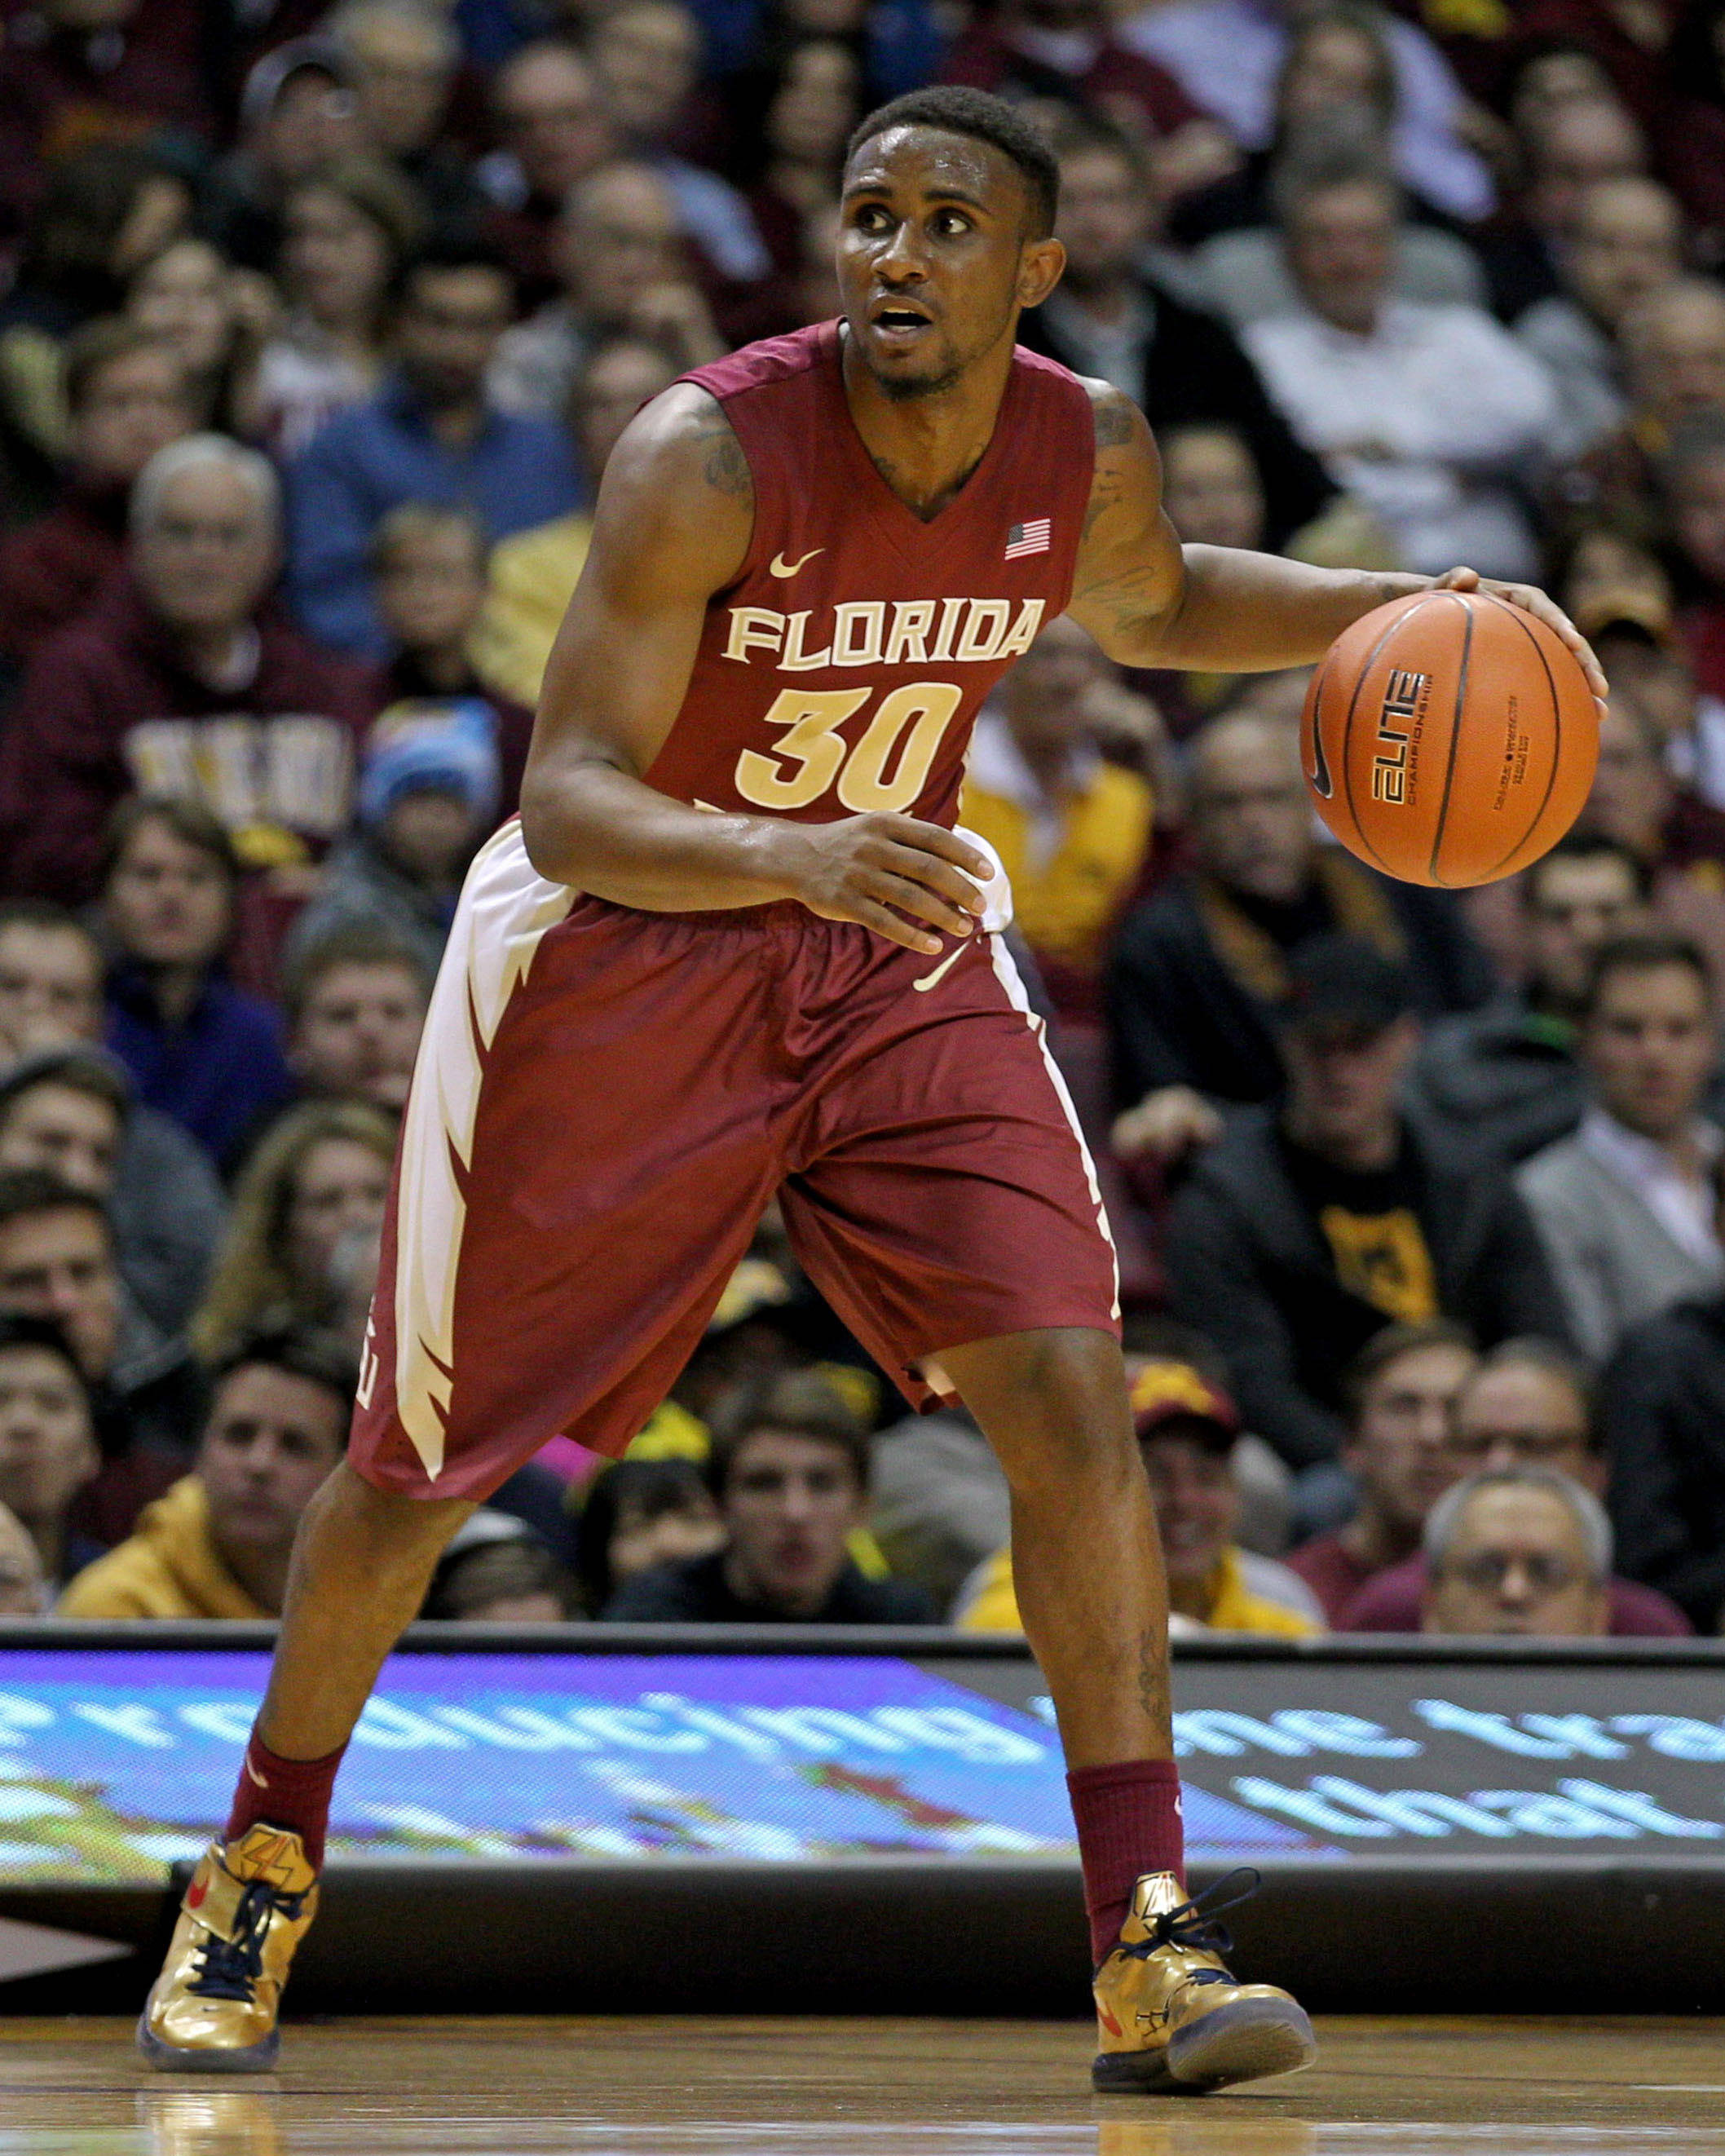 Dec 3, 2013; Minneapolis, MN, USA; Florida State Seminoles guard Ian Miller (30) dribbles during the first half against the Minnesota Golden Gophers at Williams Arena. Mandatory Credit: Brace Hemmelgarn-USA TODAY Sports